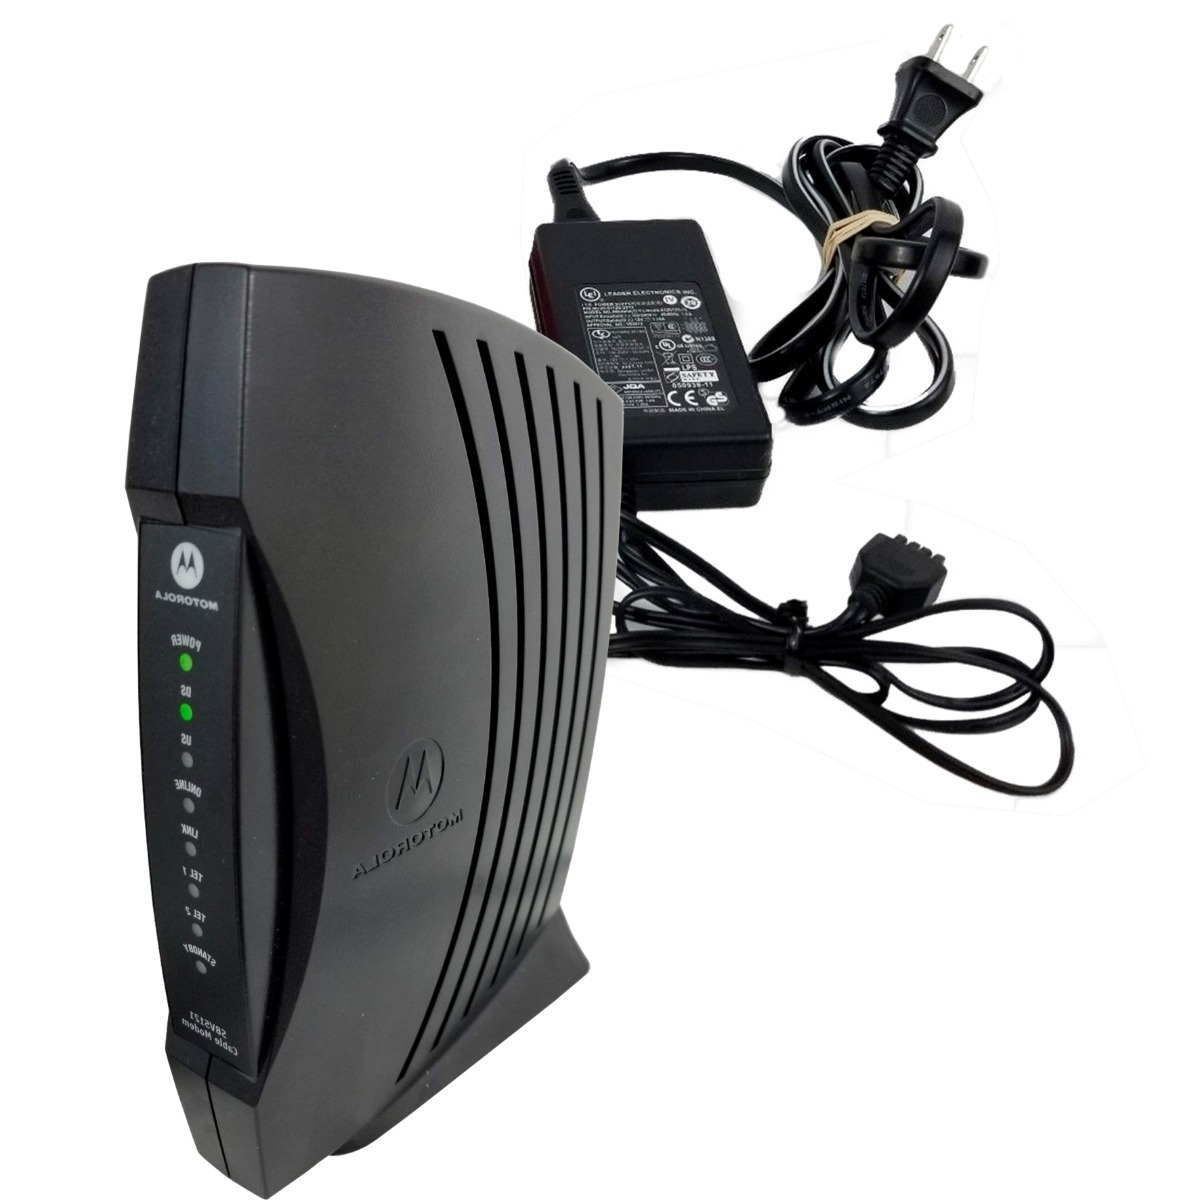 CABLE MODEM SBV5121 DRIVERS